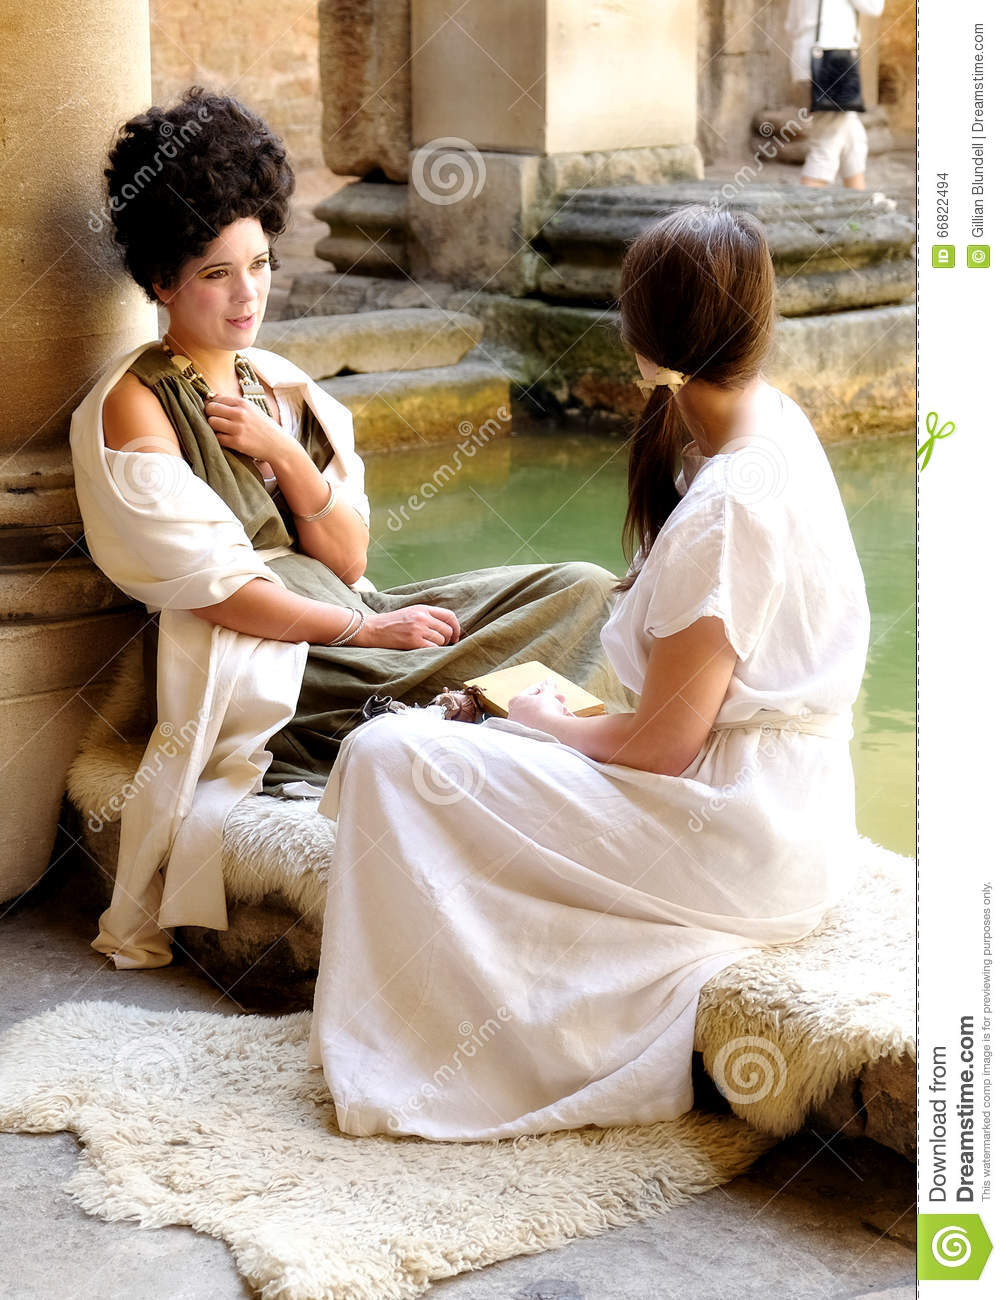 Actresses in costume at Roman Baths, Bath, England